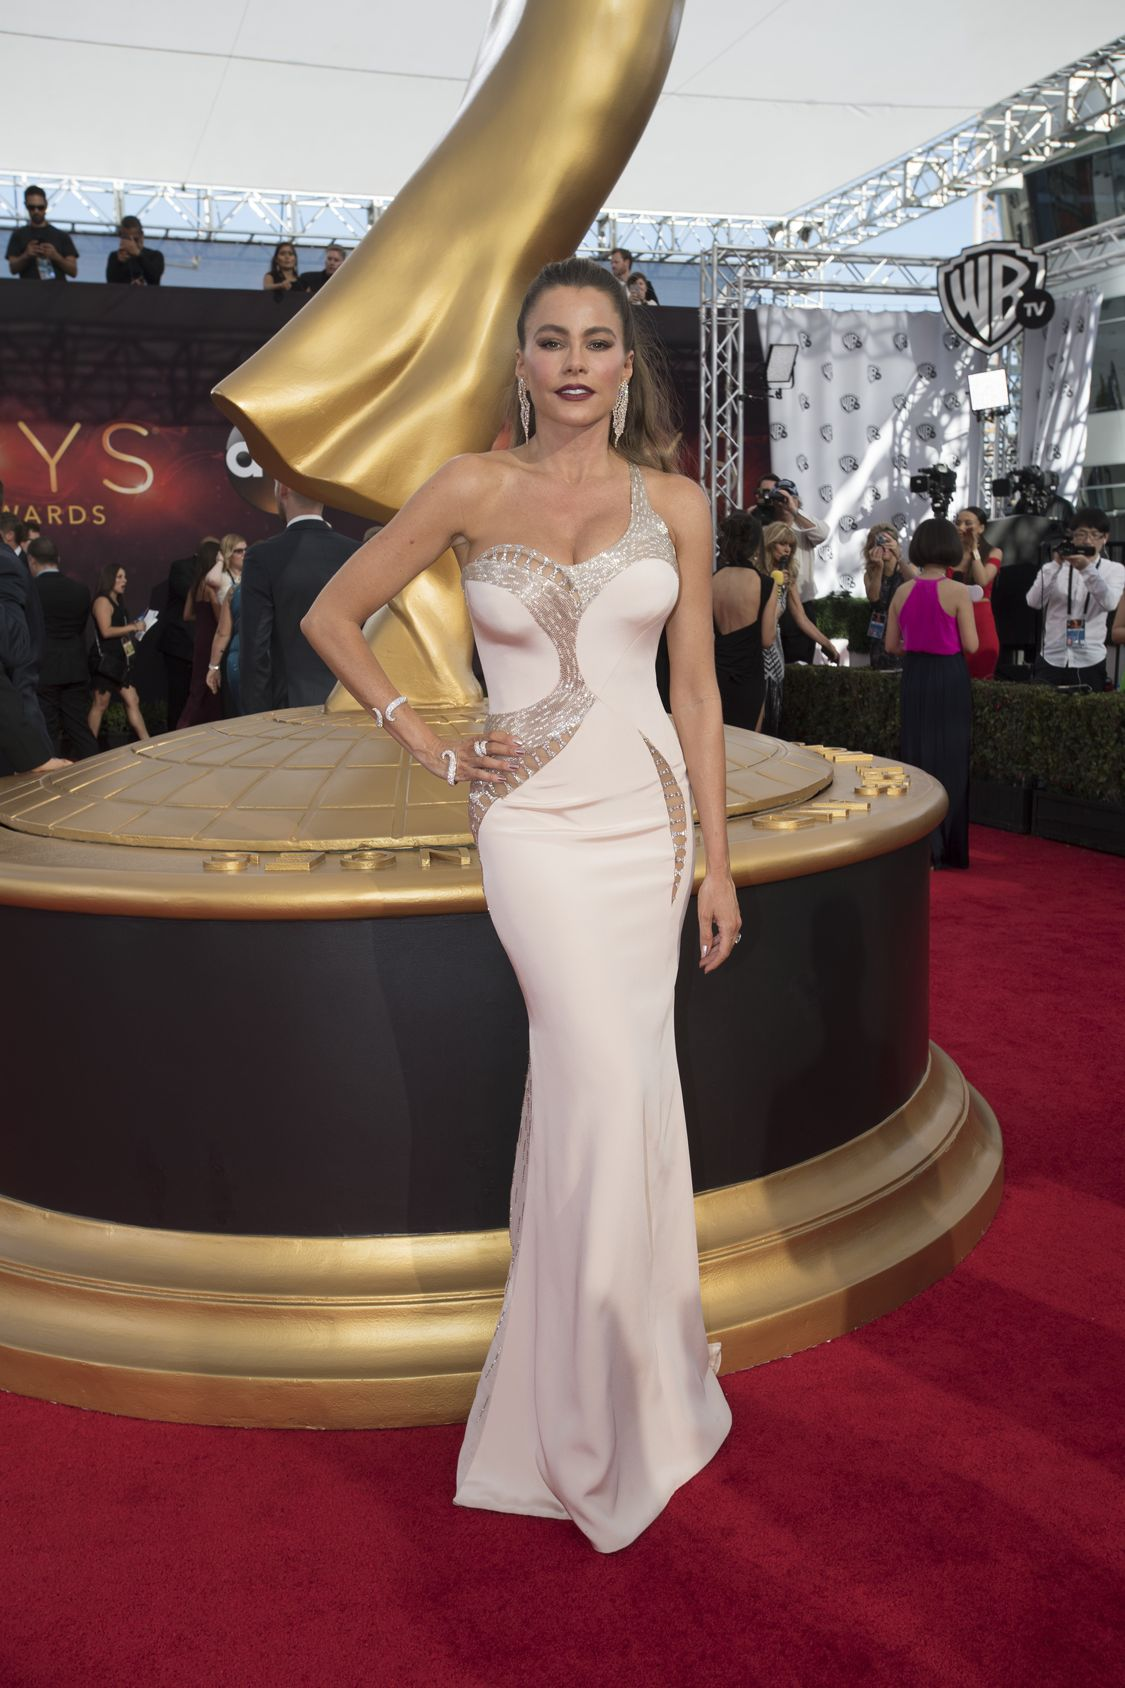 """THE 68TH EMMY(r) AWARDS - """"The 68th Emmy Awards"""" broadcasts live from The Microsoft Theater in Los Angeles, Sunday, September 18 (7:00-11:00 p.m. EDT/4:00-8:00 p.m. PDT), on ABC and is hosted by Jimmy Kimmel. (ABC/Image Group LA) SOFIA VERGARA"""